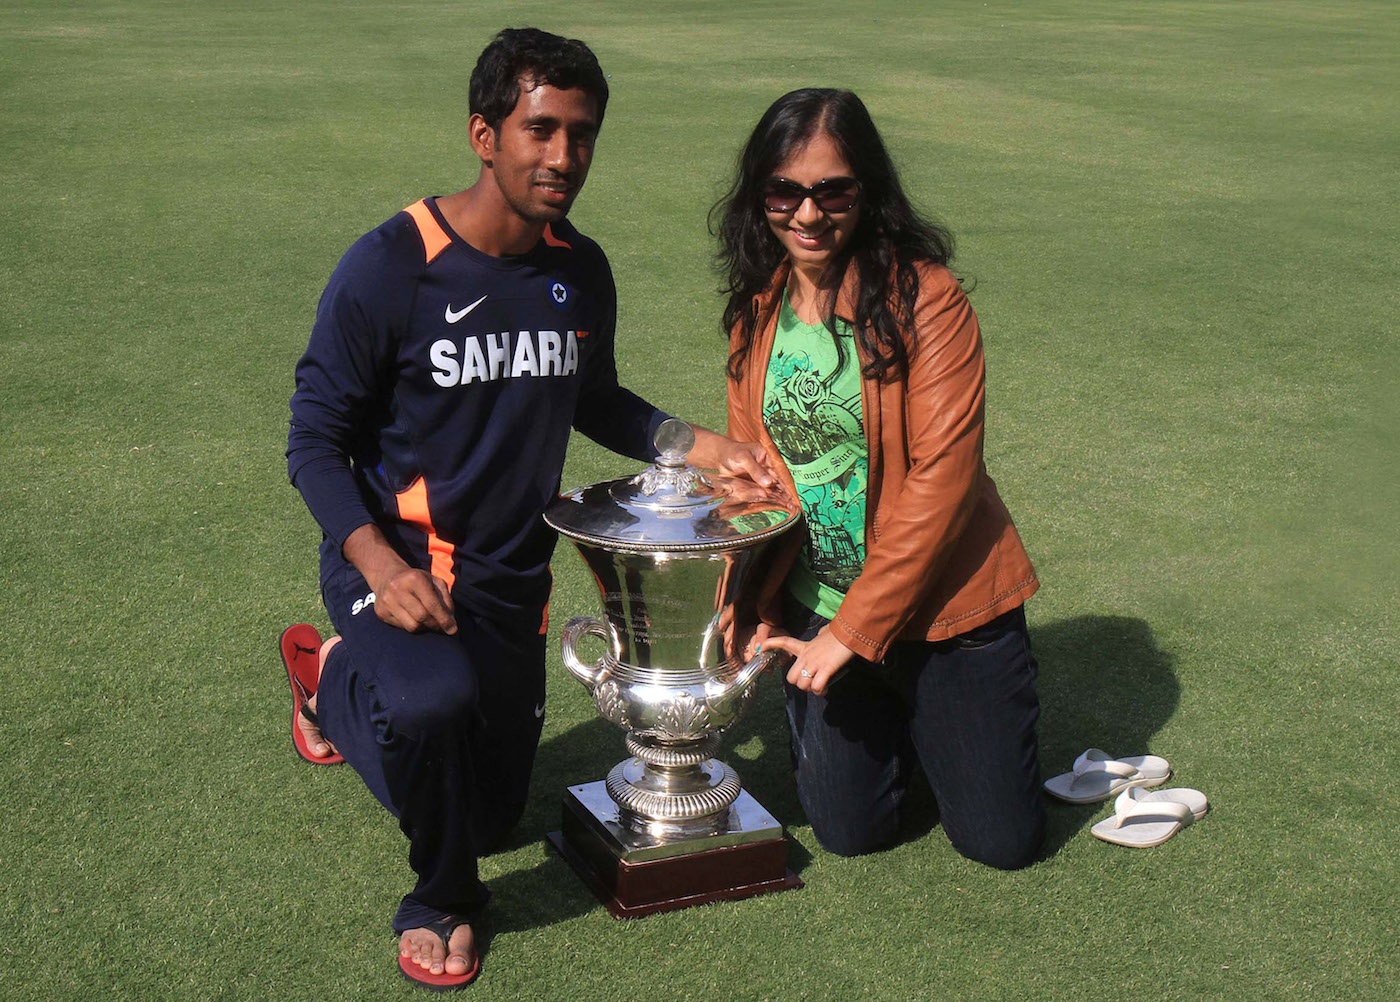 With his wife after East Zone's Duleep Trophy win in 2012